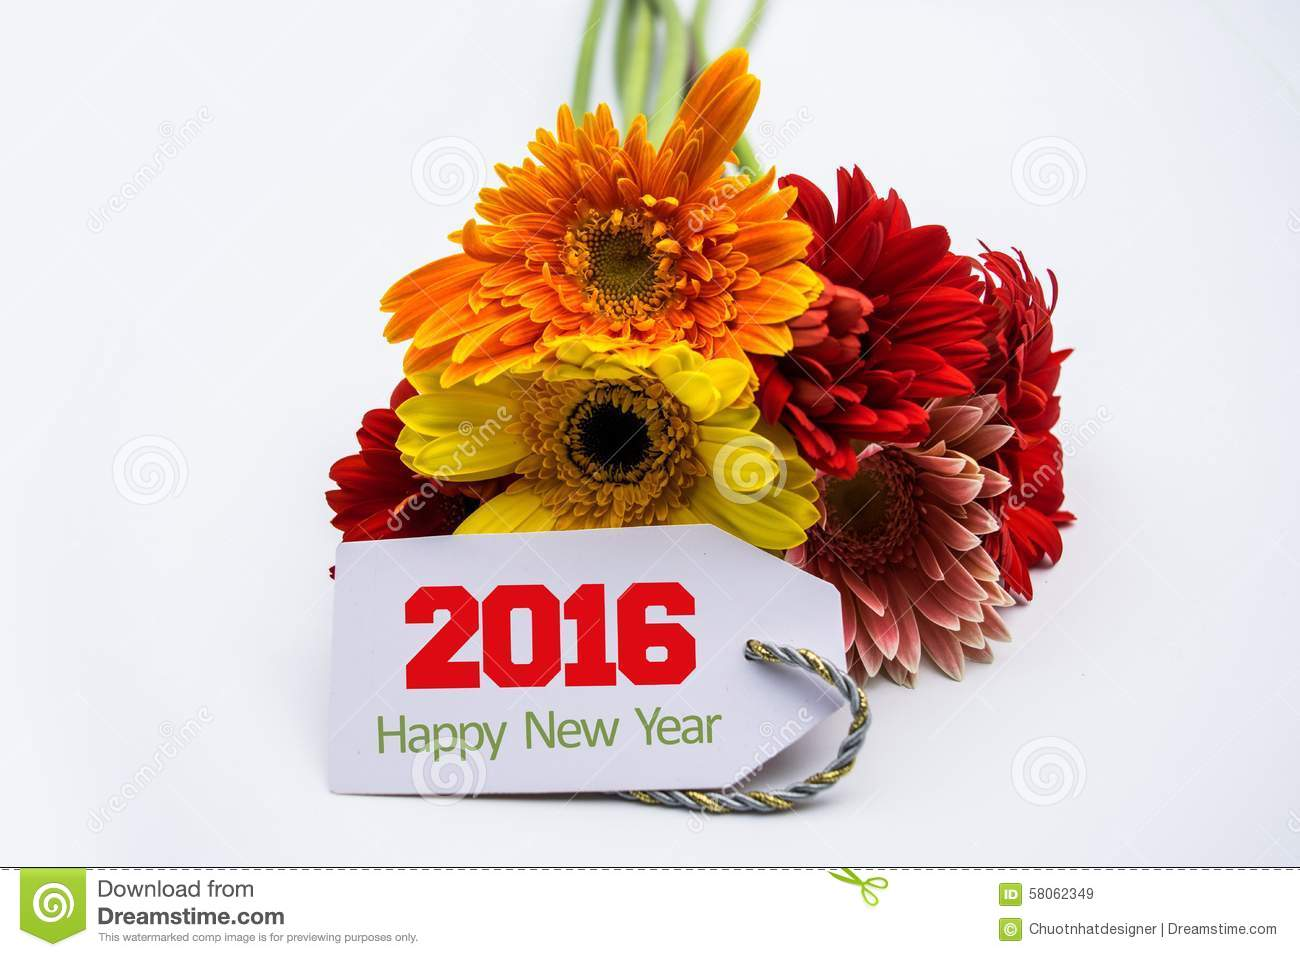 happy new year 2016 with flower and tag isolated on a white background